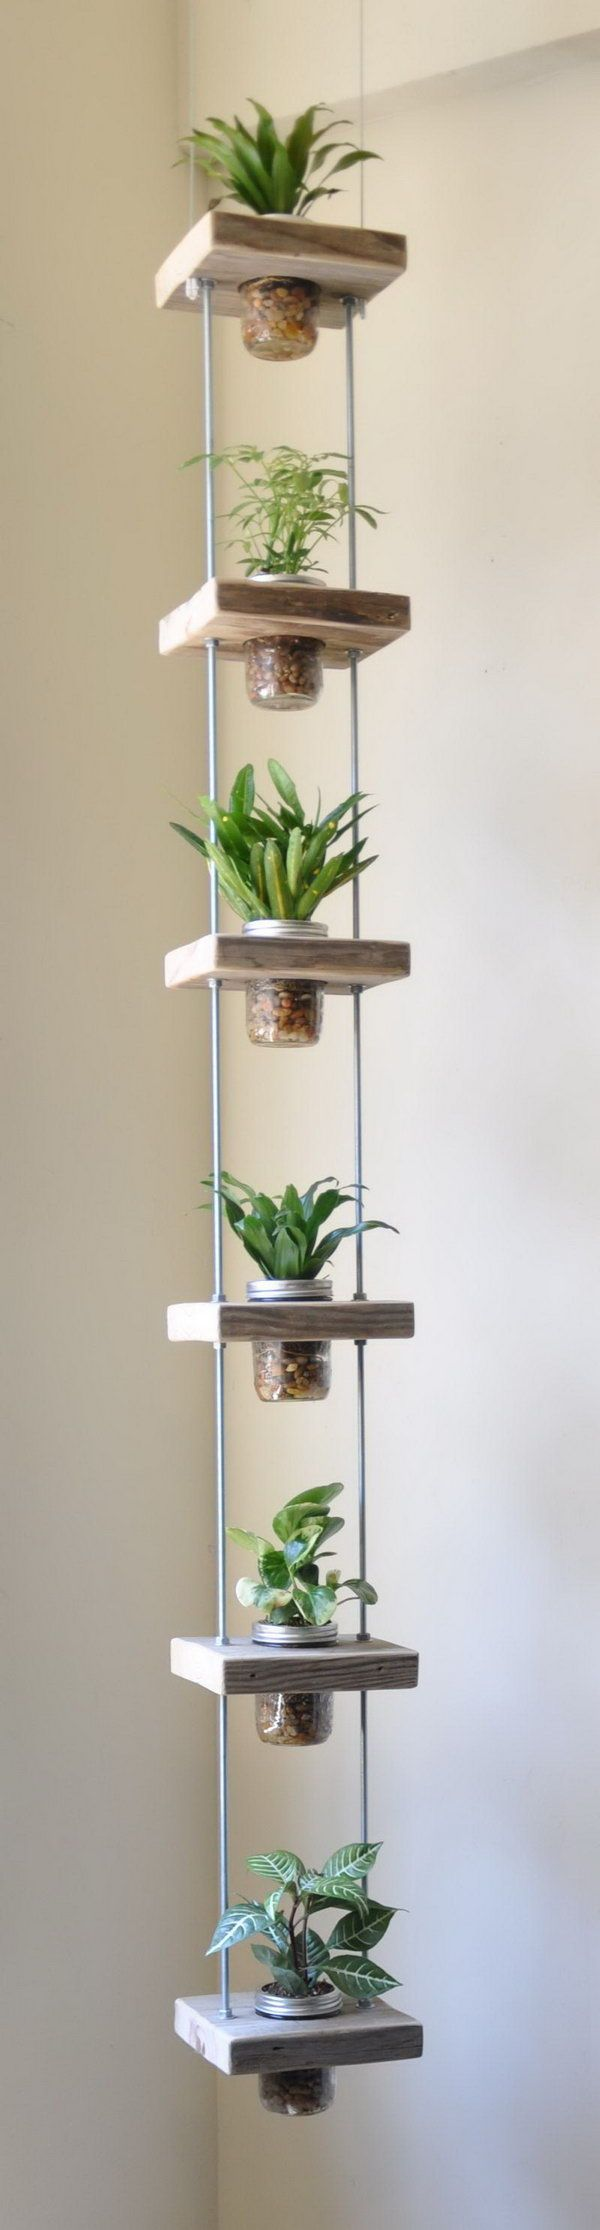 Vertical herb garden from salvaged wood and mason jars.